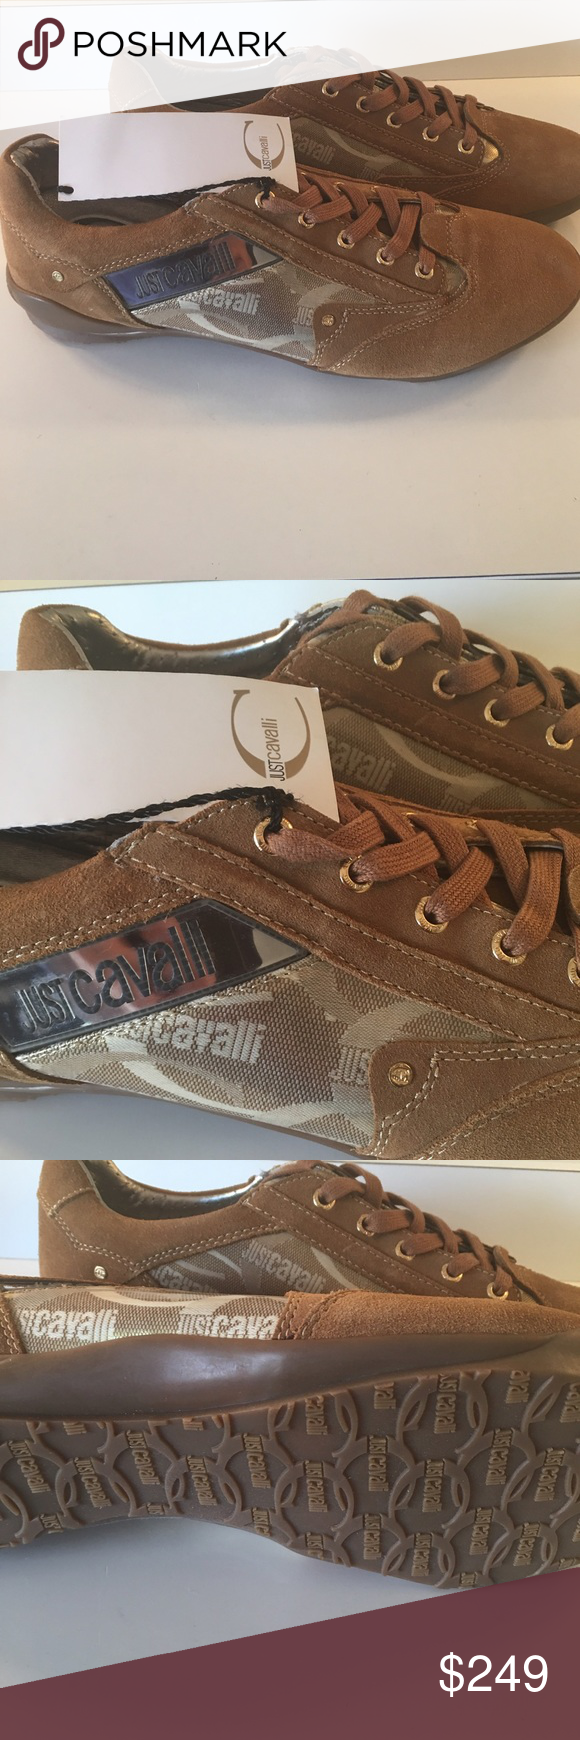 🆕ROBERTO CAVALLI  JUST CAVALLI NEW SNEAKERS AUTH JUST CAVALLI BU ROBERTO CAVALLI MENS NEW WITH TAGS NEVER WORN SNEAKERS. AMAZING STYLE AND FASHION IN THESE EYE CATCHING SNEAKERS. CAN BE WORN DRESS UP OR DOWN. THESE ARE A SIZE 44 or 11 Just Cavalli Shoes Sneakers